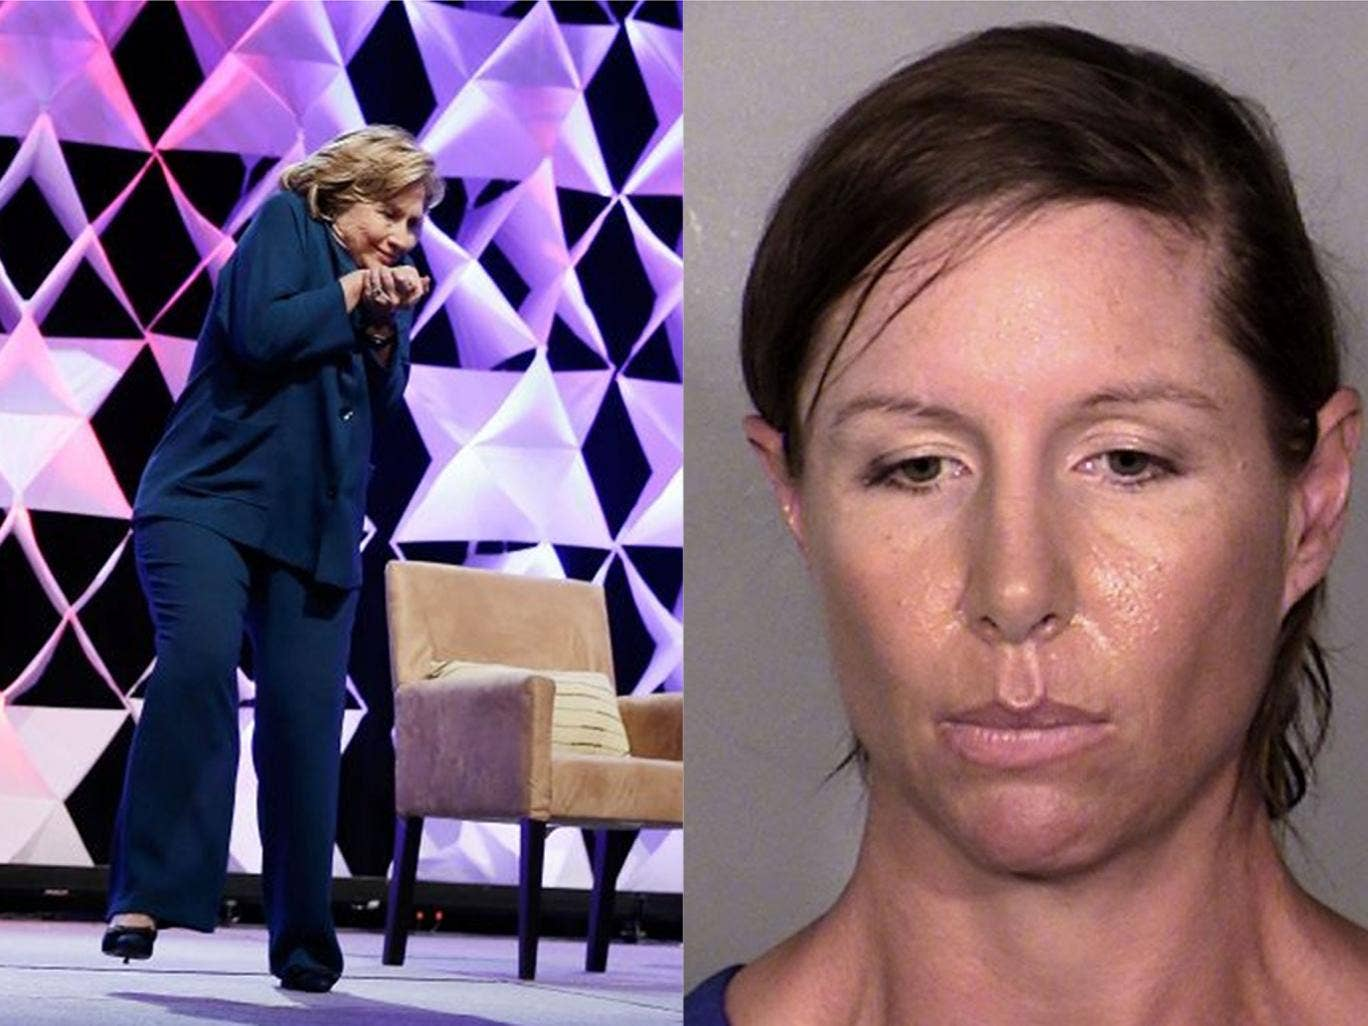 Former Secretary of State Hillary Clinton ducks after a woman threw an shoe toward her during a speech on Thursday. This image provided by the Las Vegas Metropolitan Police Department shows Alison Ernst, who was arrested April 10, 2014 in connection with